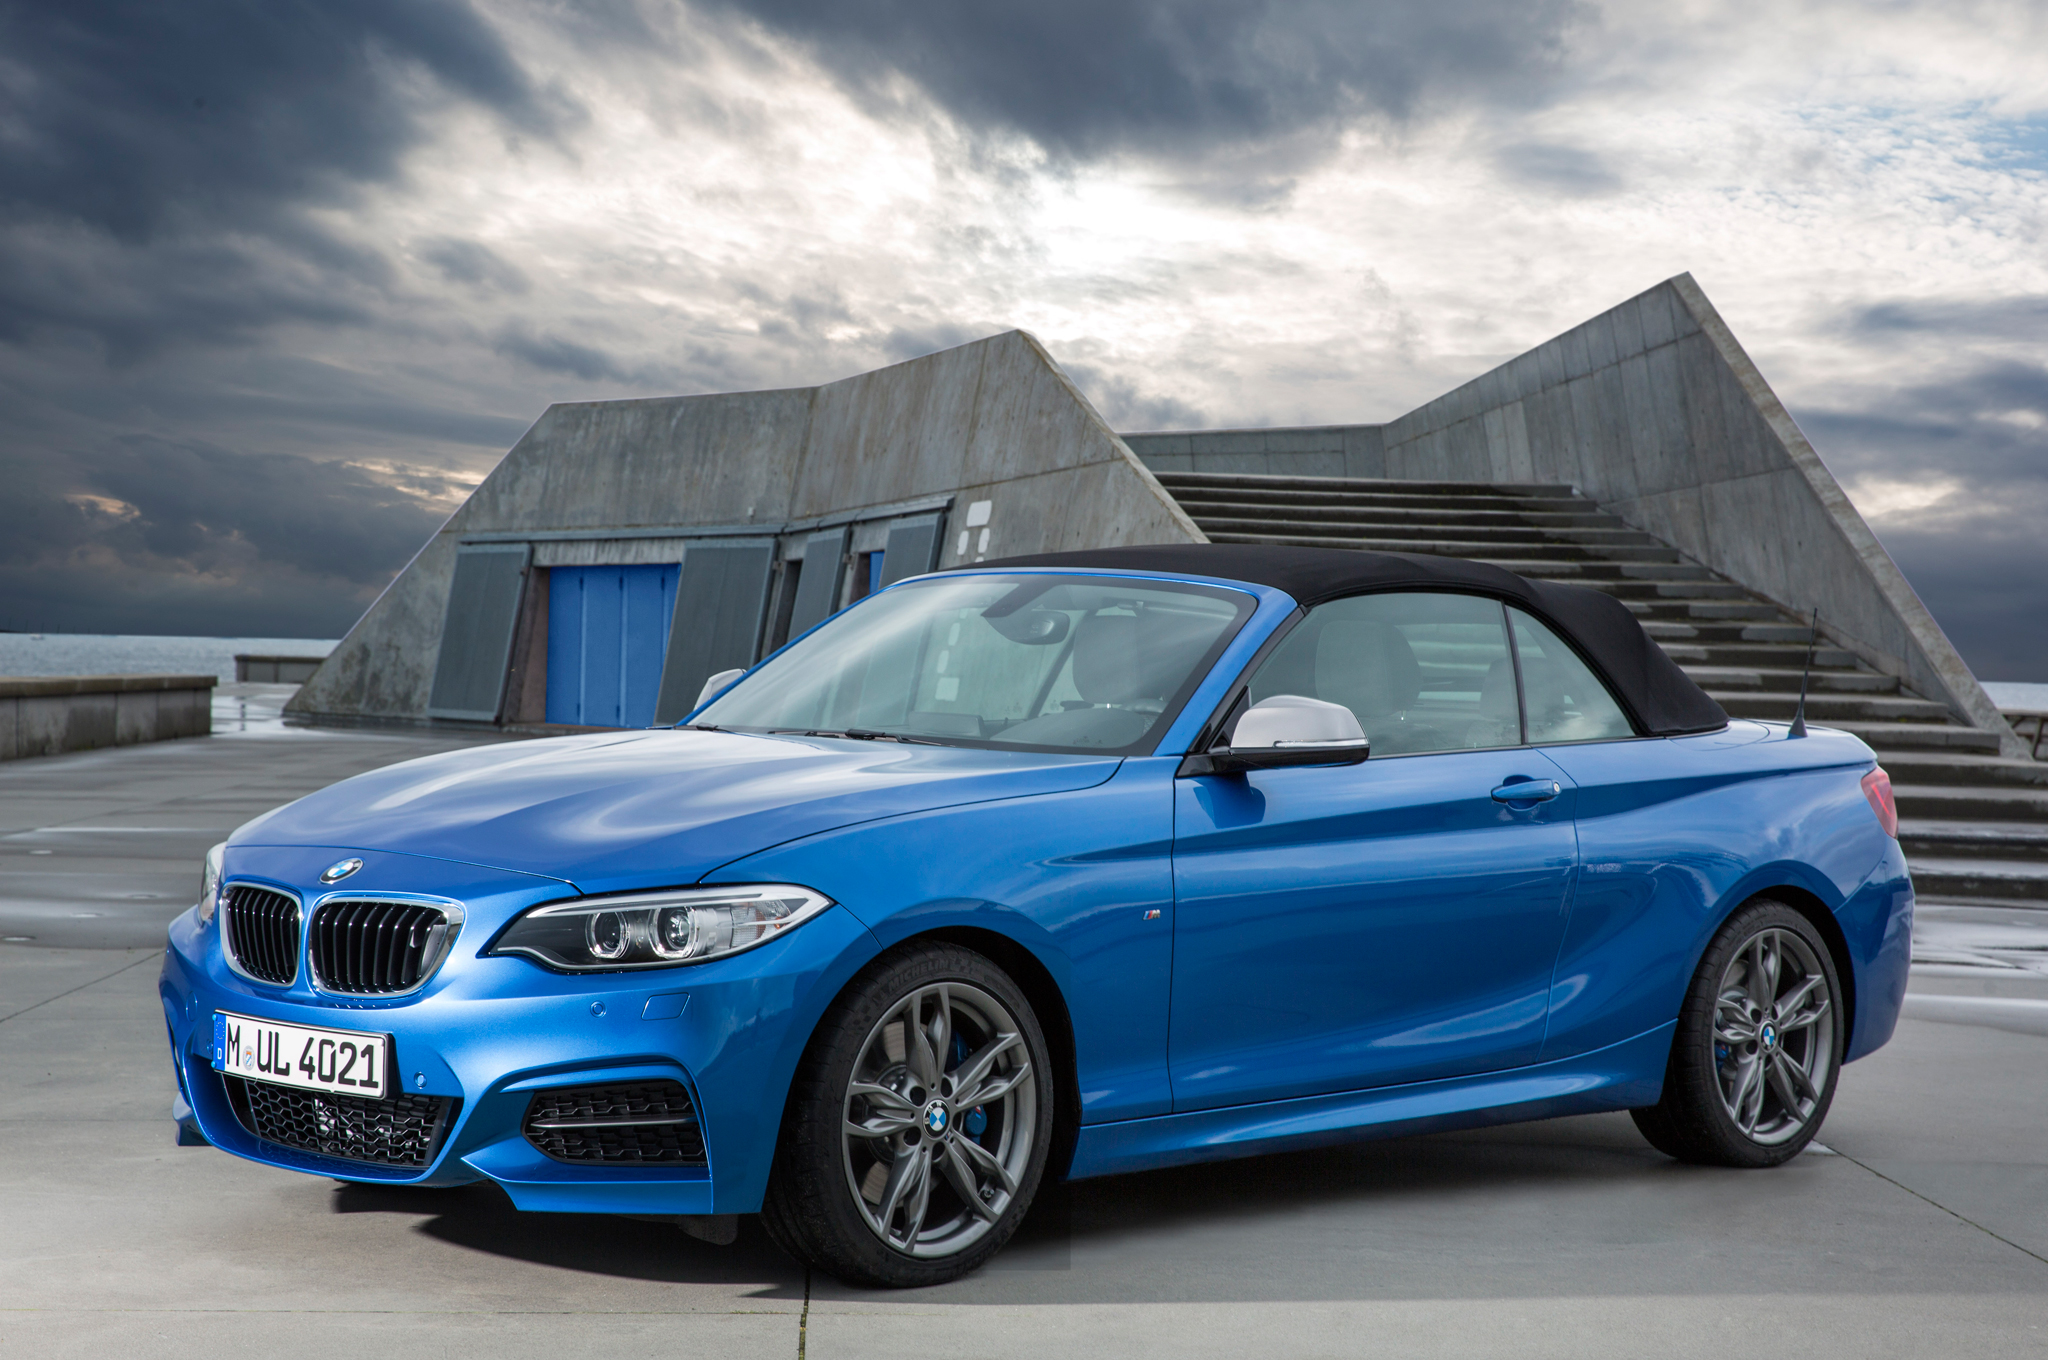 2015 BMW 2 Series Convertible First Look - Motor Trend